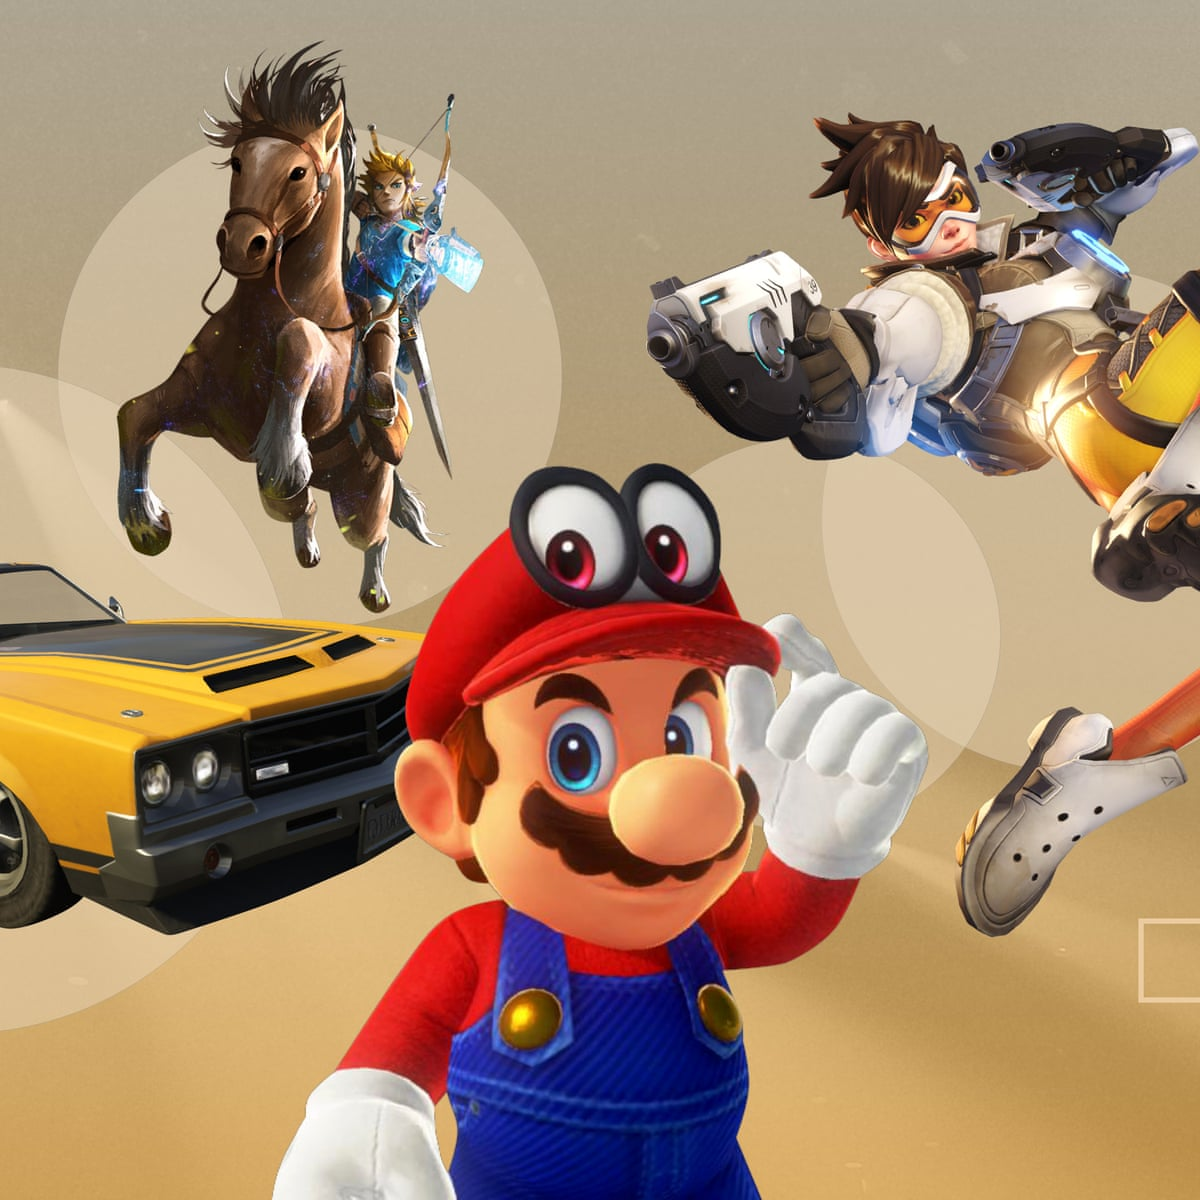 The 50 best video games of the 21st century | Games | The Guardian